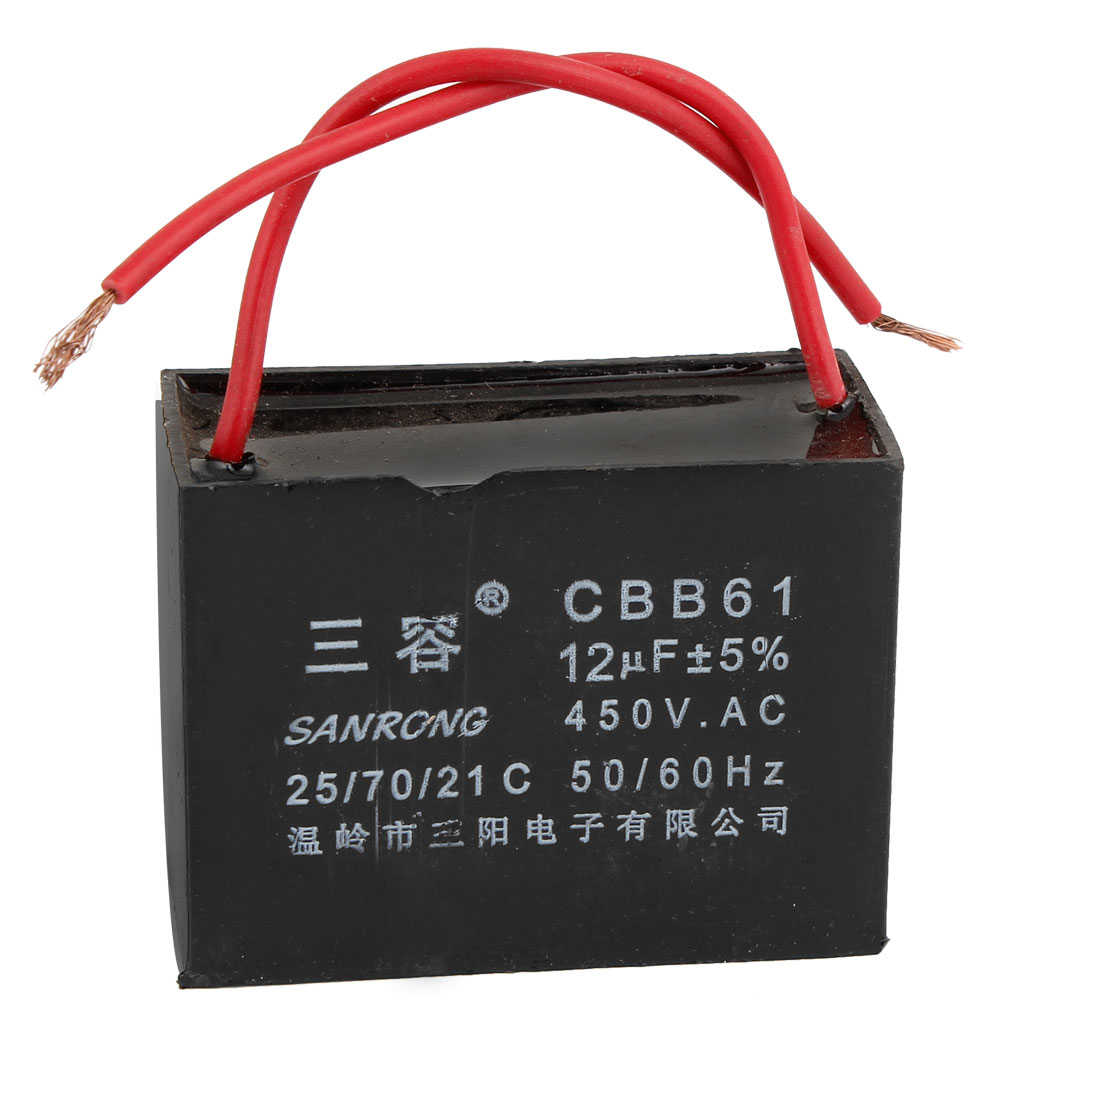 AC 450V 12uF Two Wired Lead Motor Running Capacitor CBB61 Black